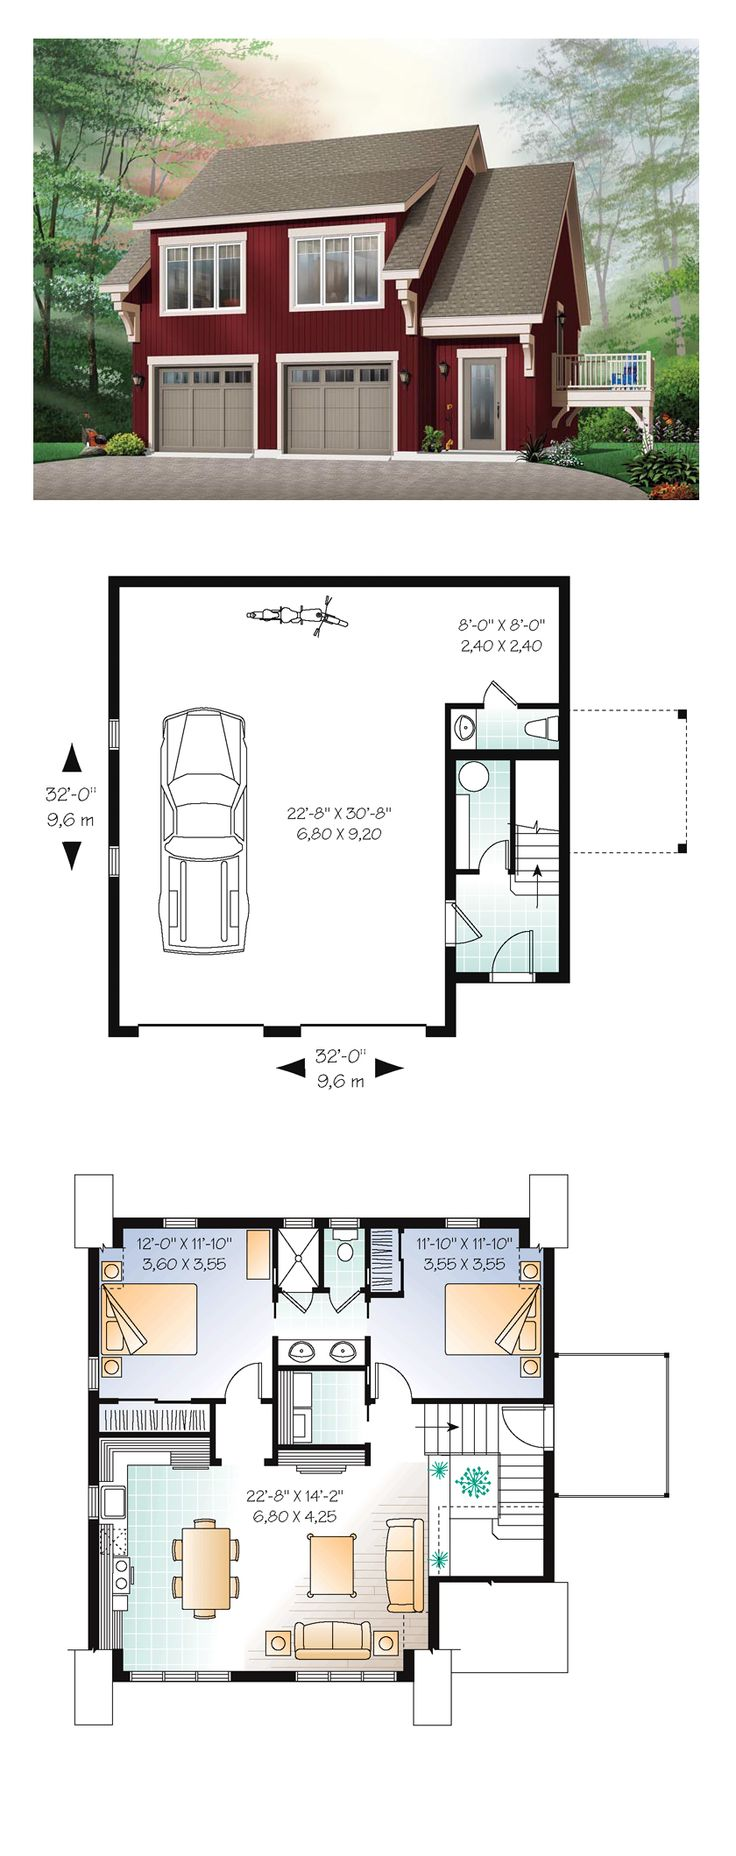 25 best ideas about garage apartment plans on pinterest for Workshop plans with loft